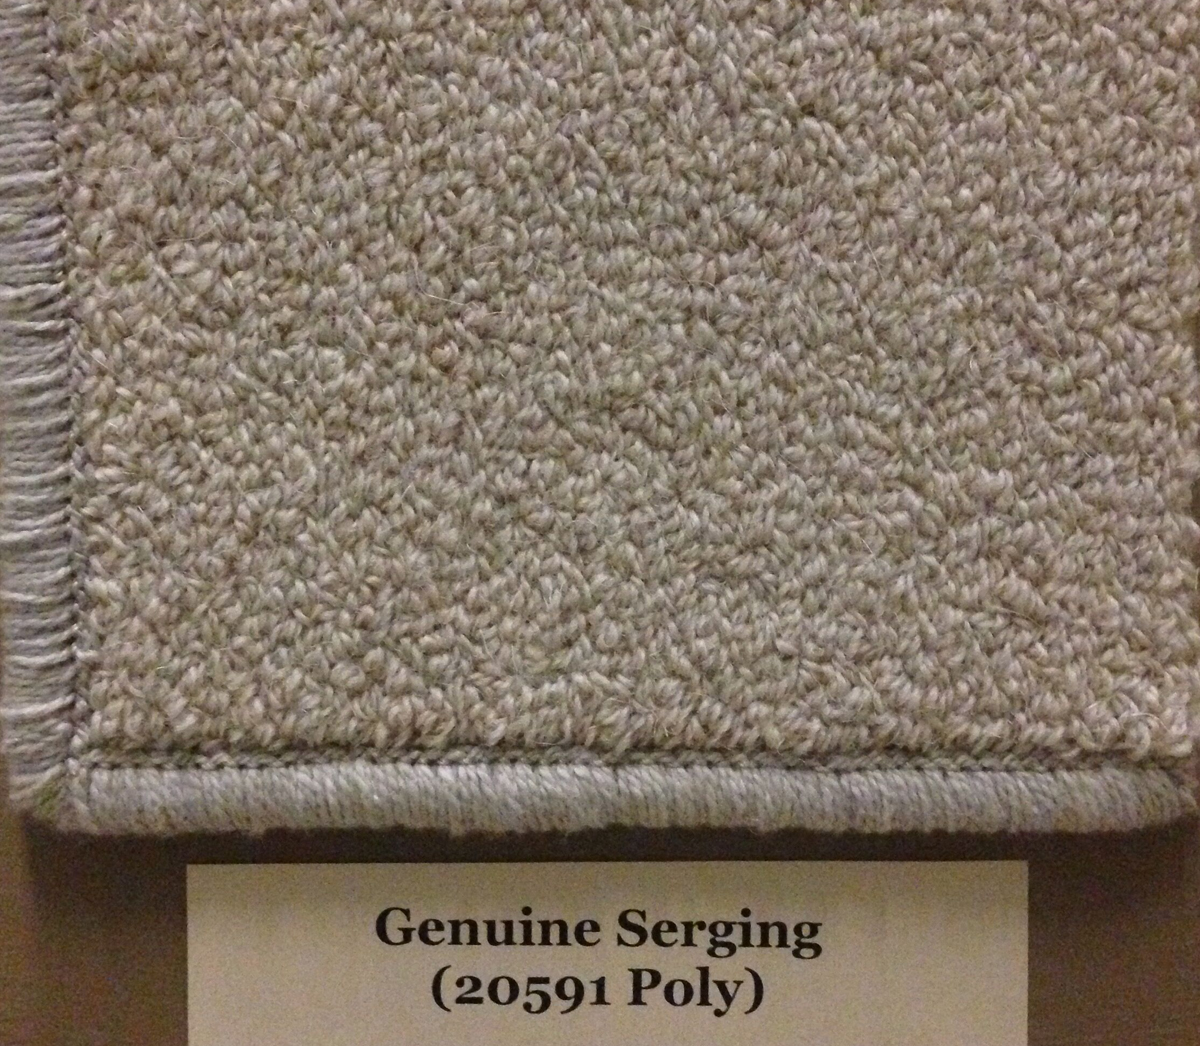 Genuine Serging